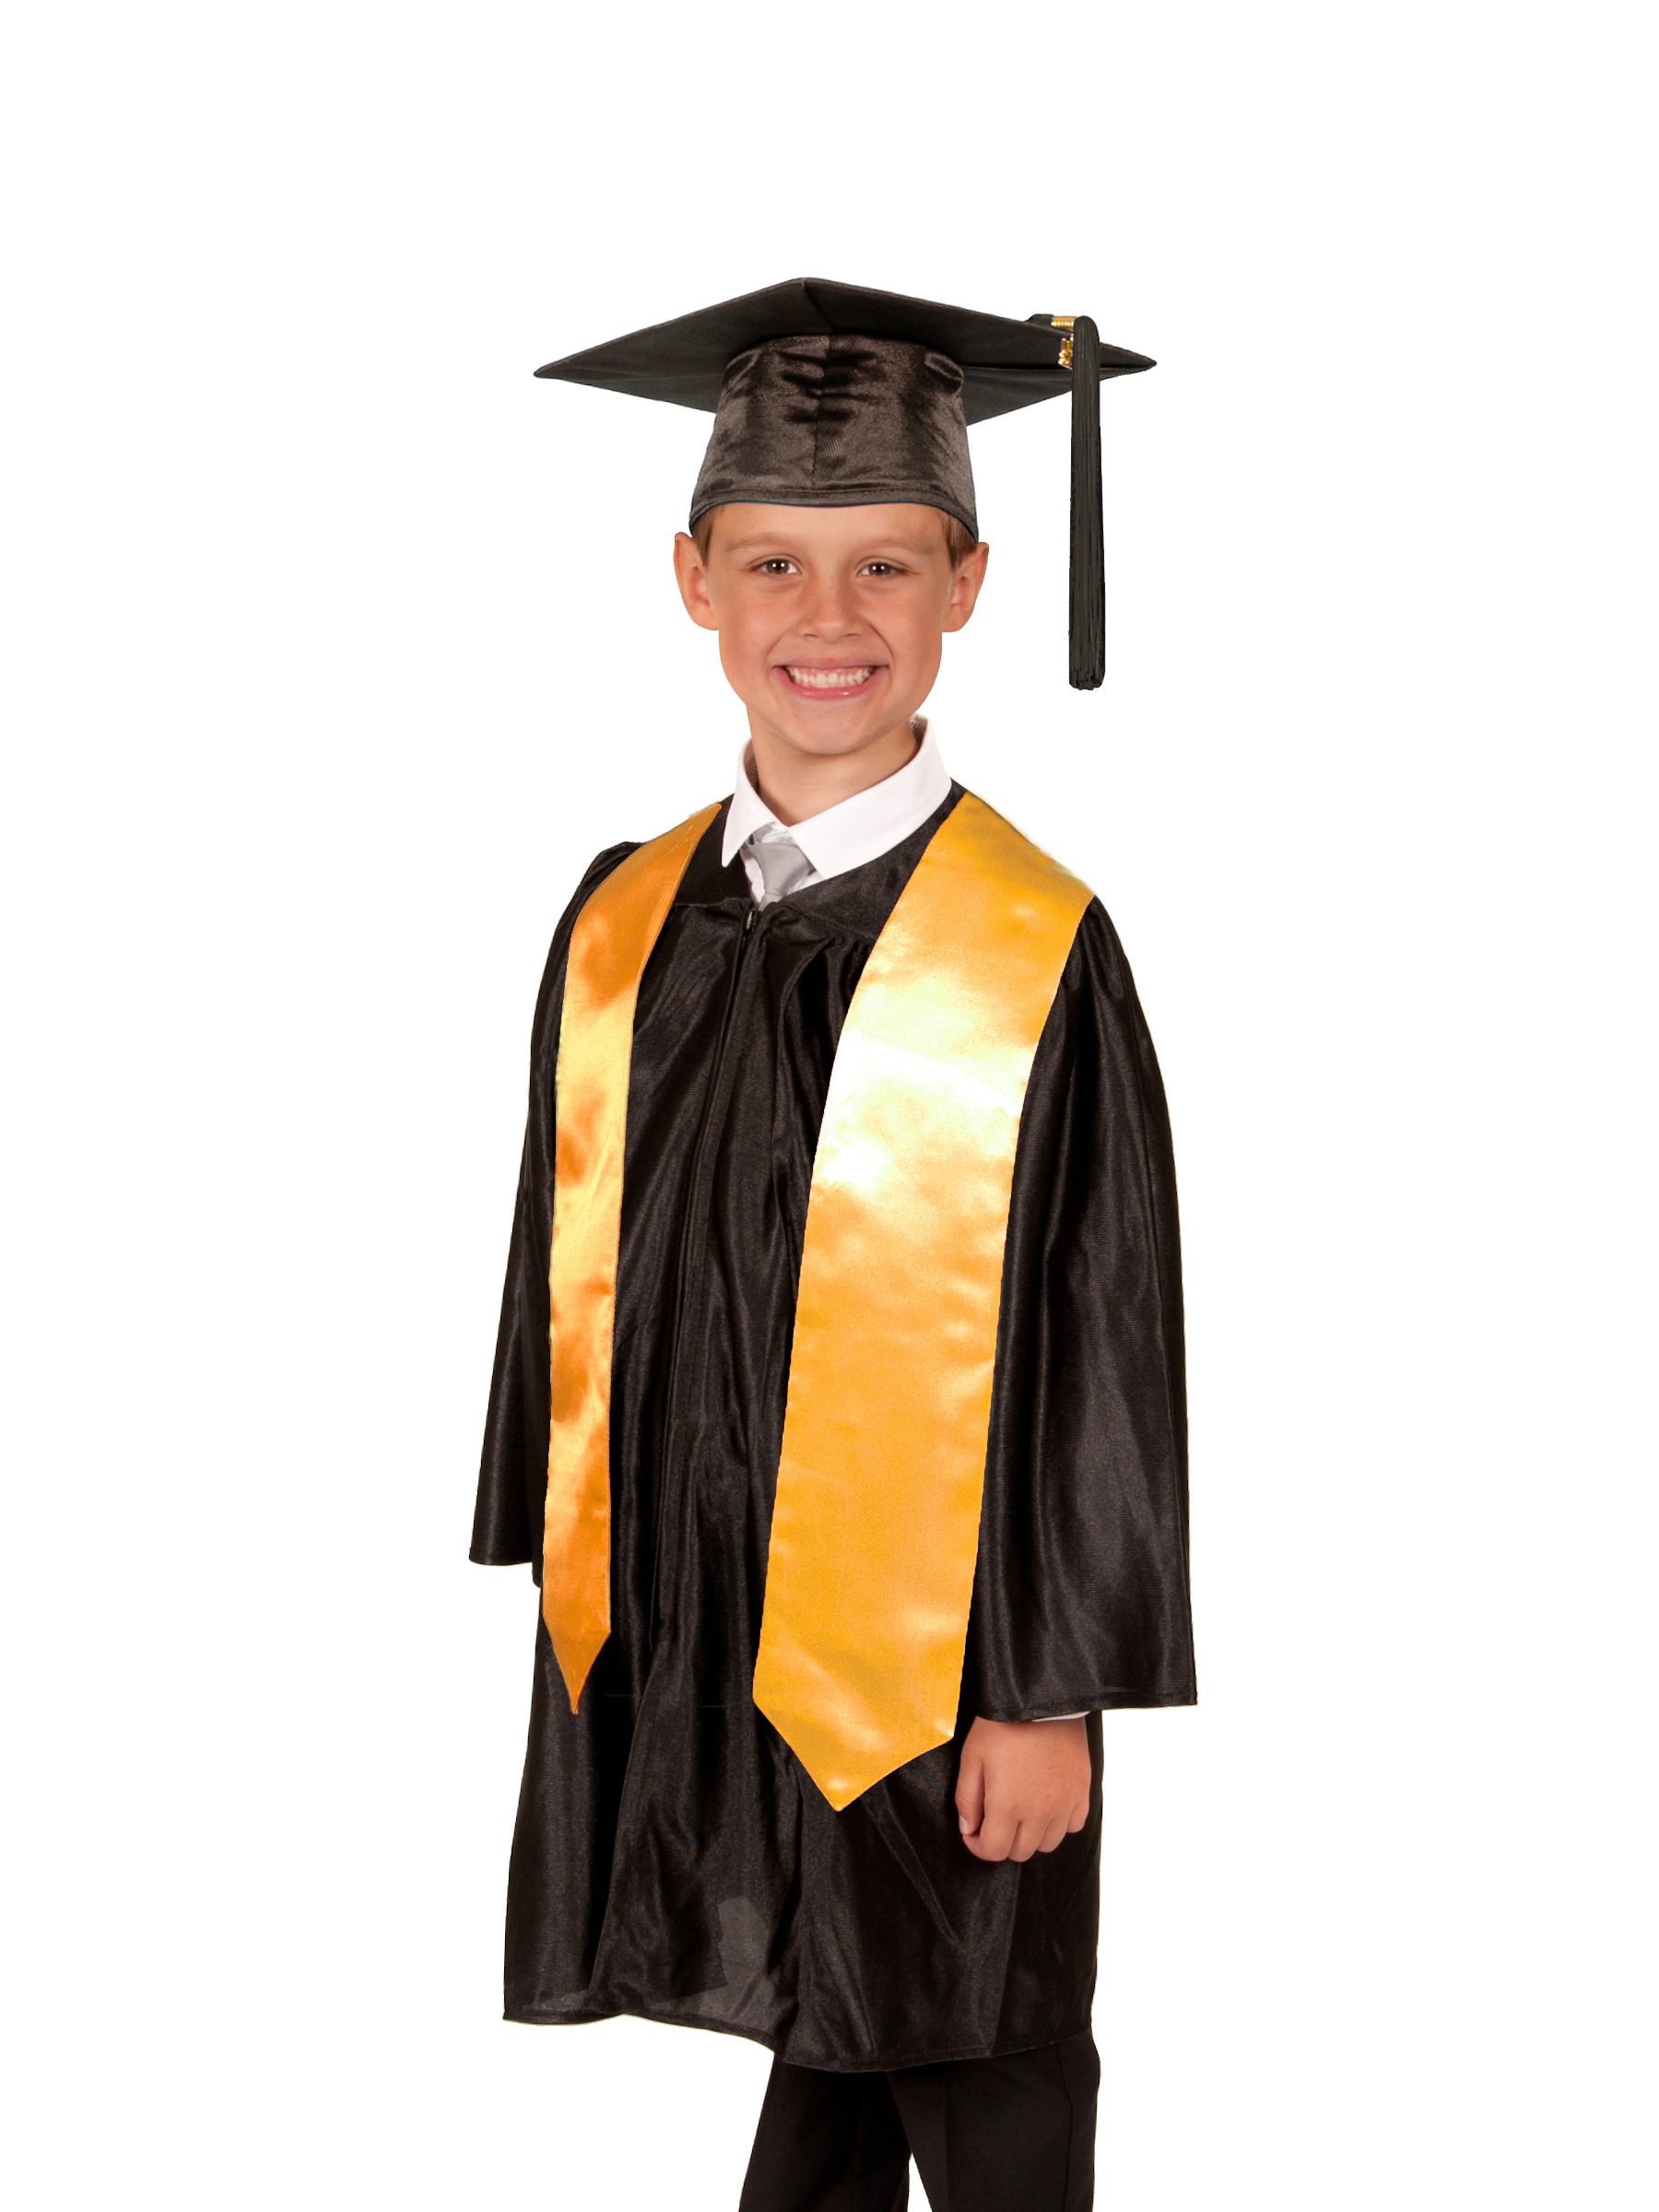 Shiny Primary School Graduation Gown, Cap and Stole - Graduation ...